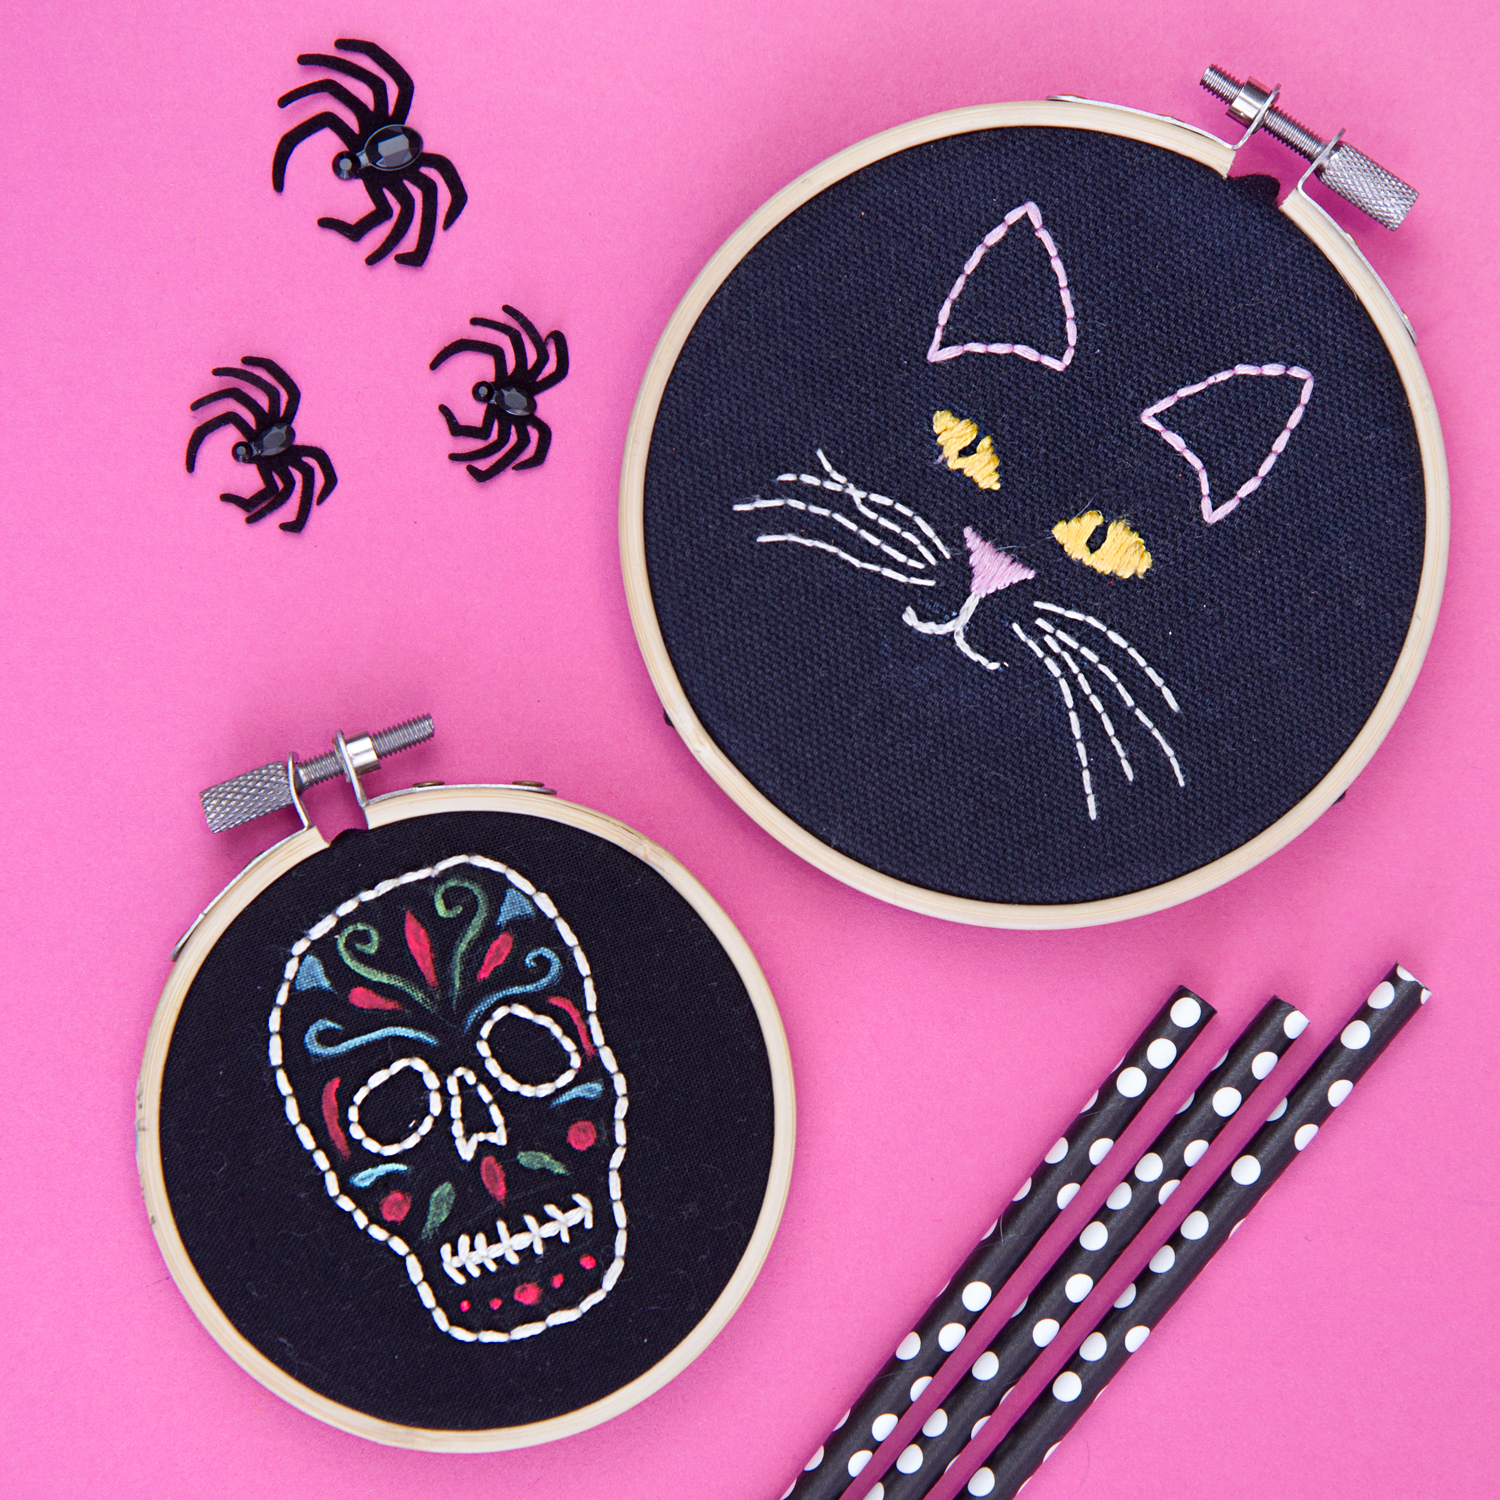 embroidery-cat2.jpg